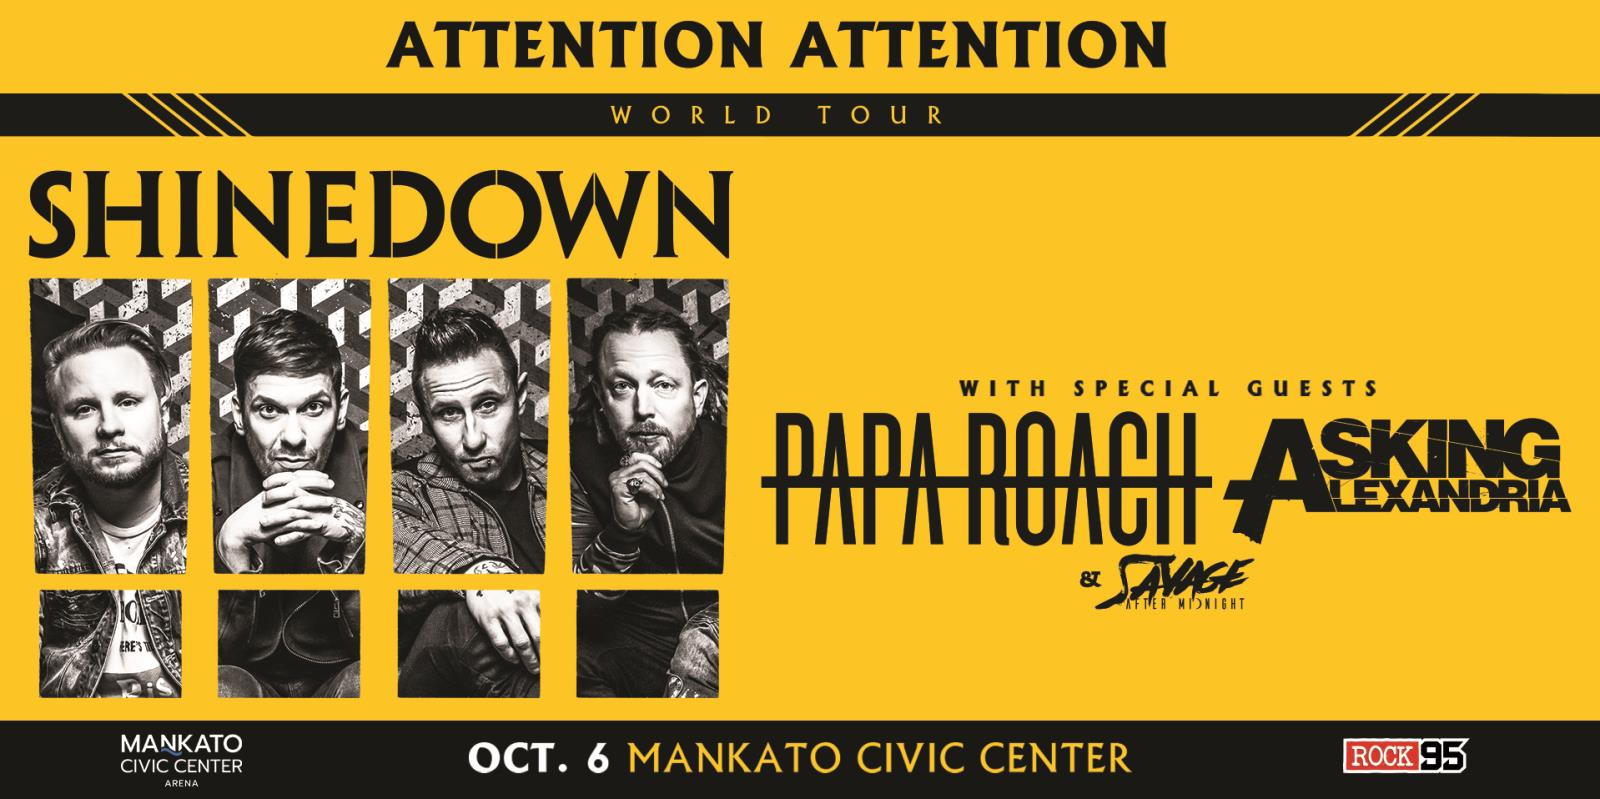 Shinedown's ATTENTION ATTENTION World Tour